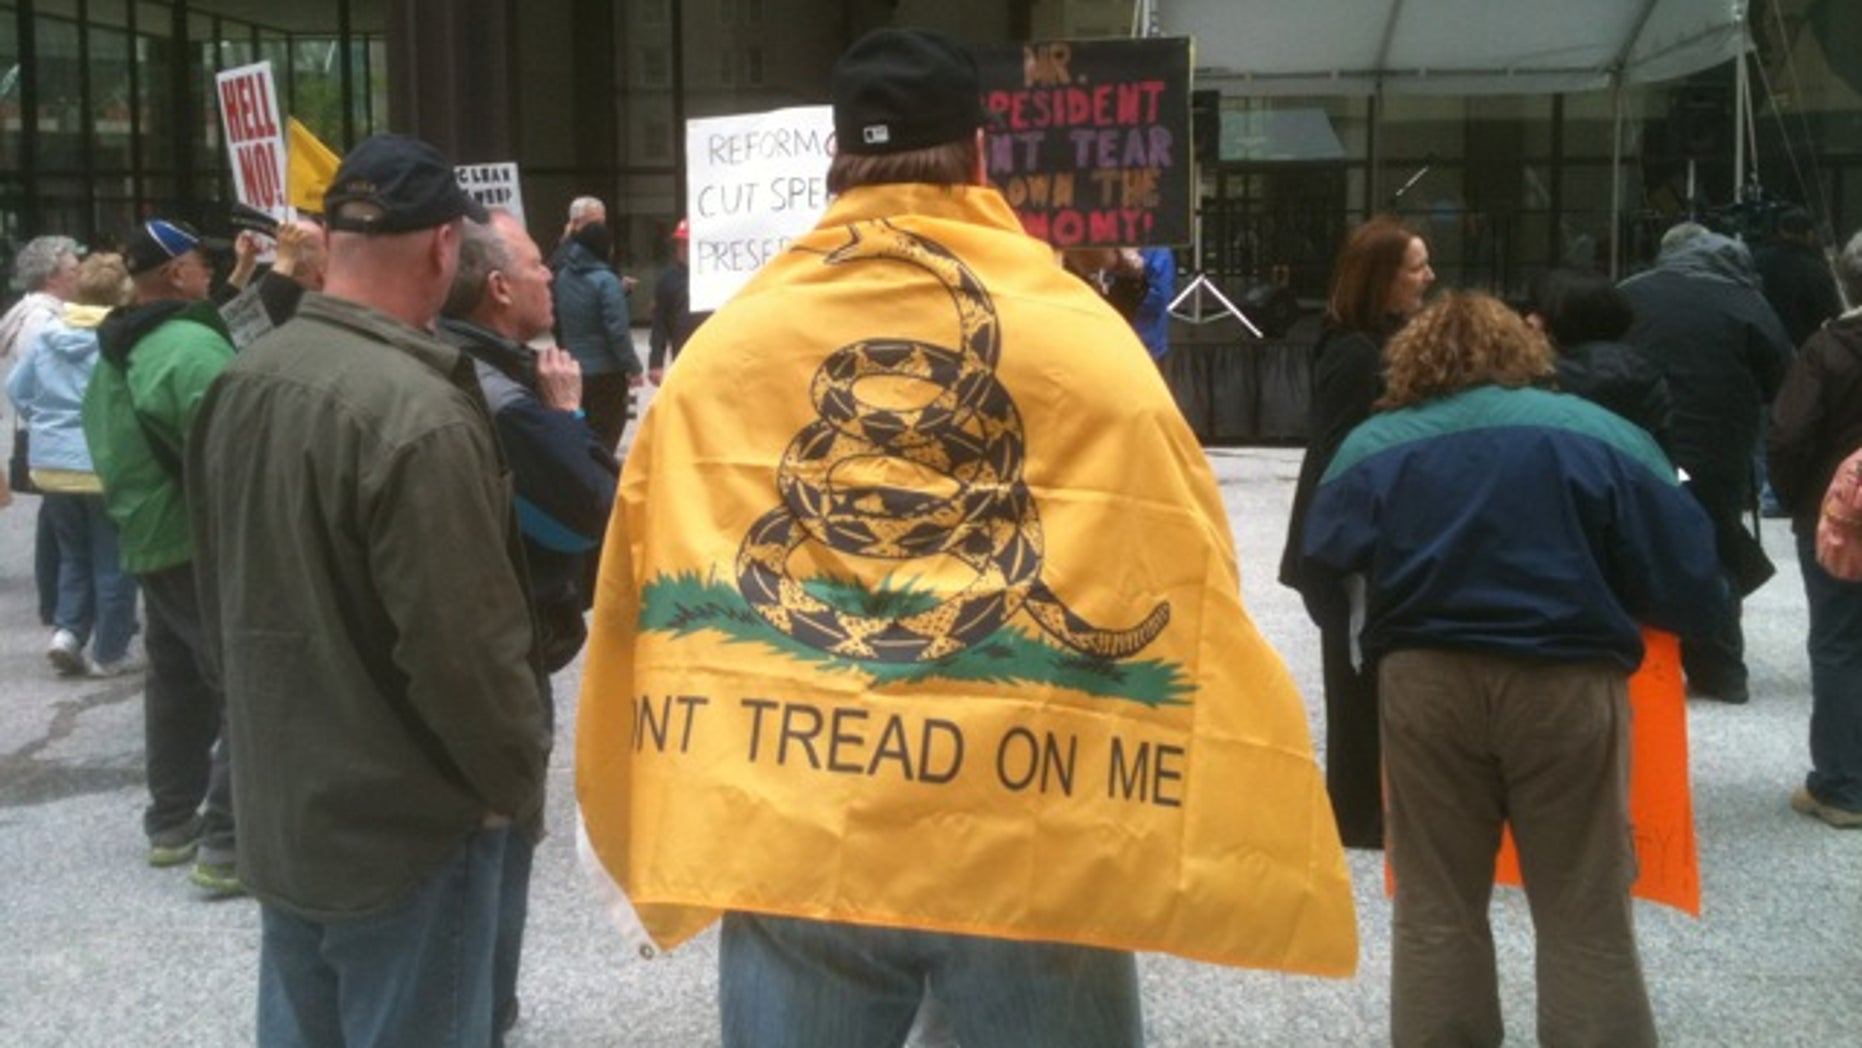 A tea party activist wears a replica of the 1775 Gadsden flag at the 2012 Tea Party Tax Day Rally in Chicago, Ill. (Michael Volpe / The Daily Caller)